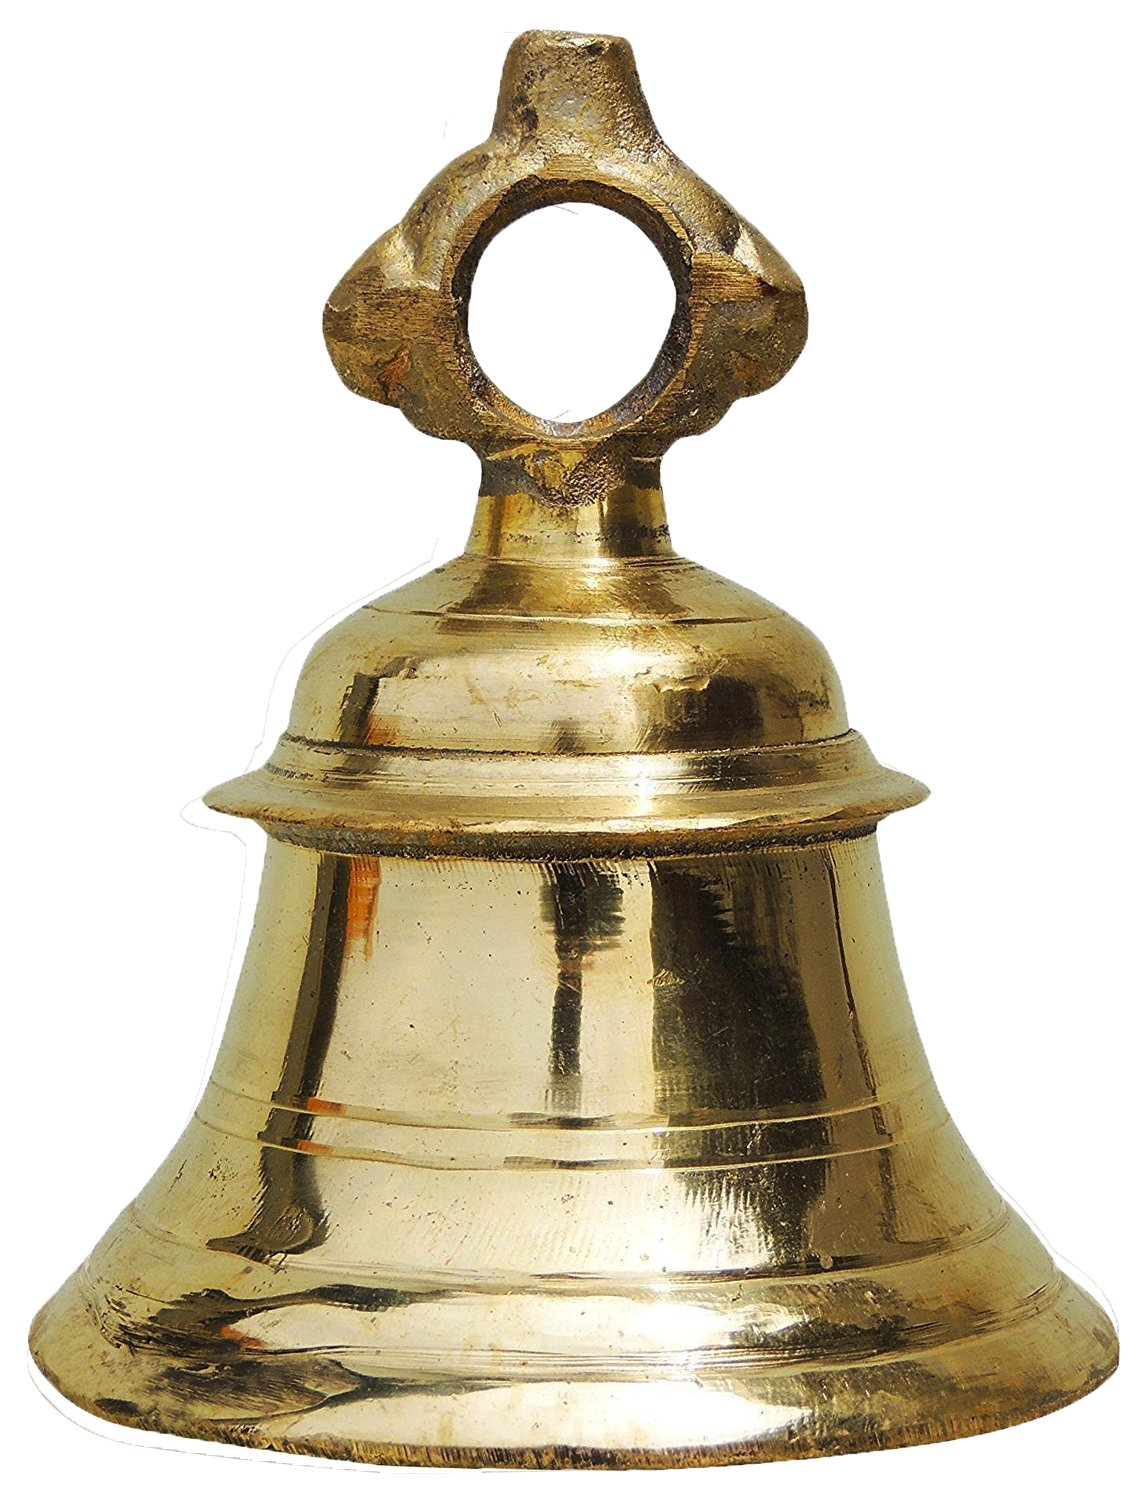 PARIJAT HANDICRAFT Solid Brass Temple Ganta Hanging Ship Bell Brass Pooja Bell Indian Temple Bell Size-7 Inch by PARIJAT HANDICRAFT